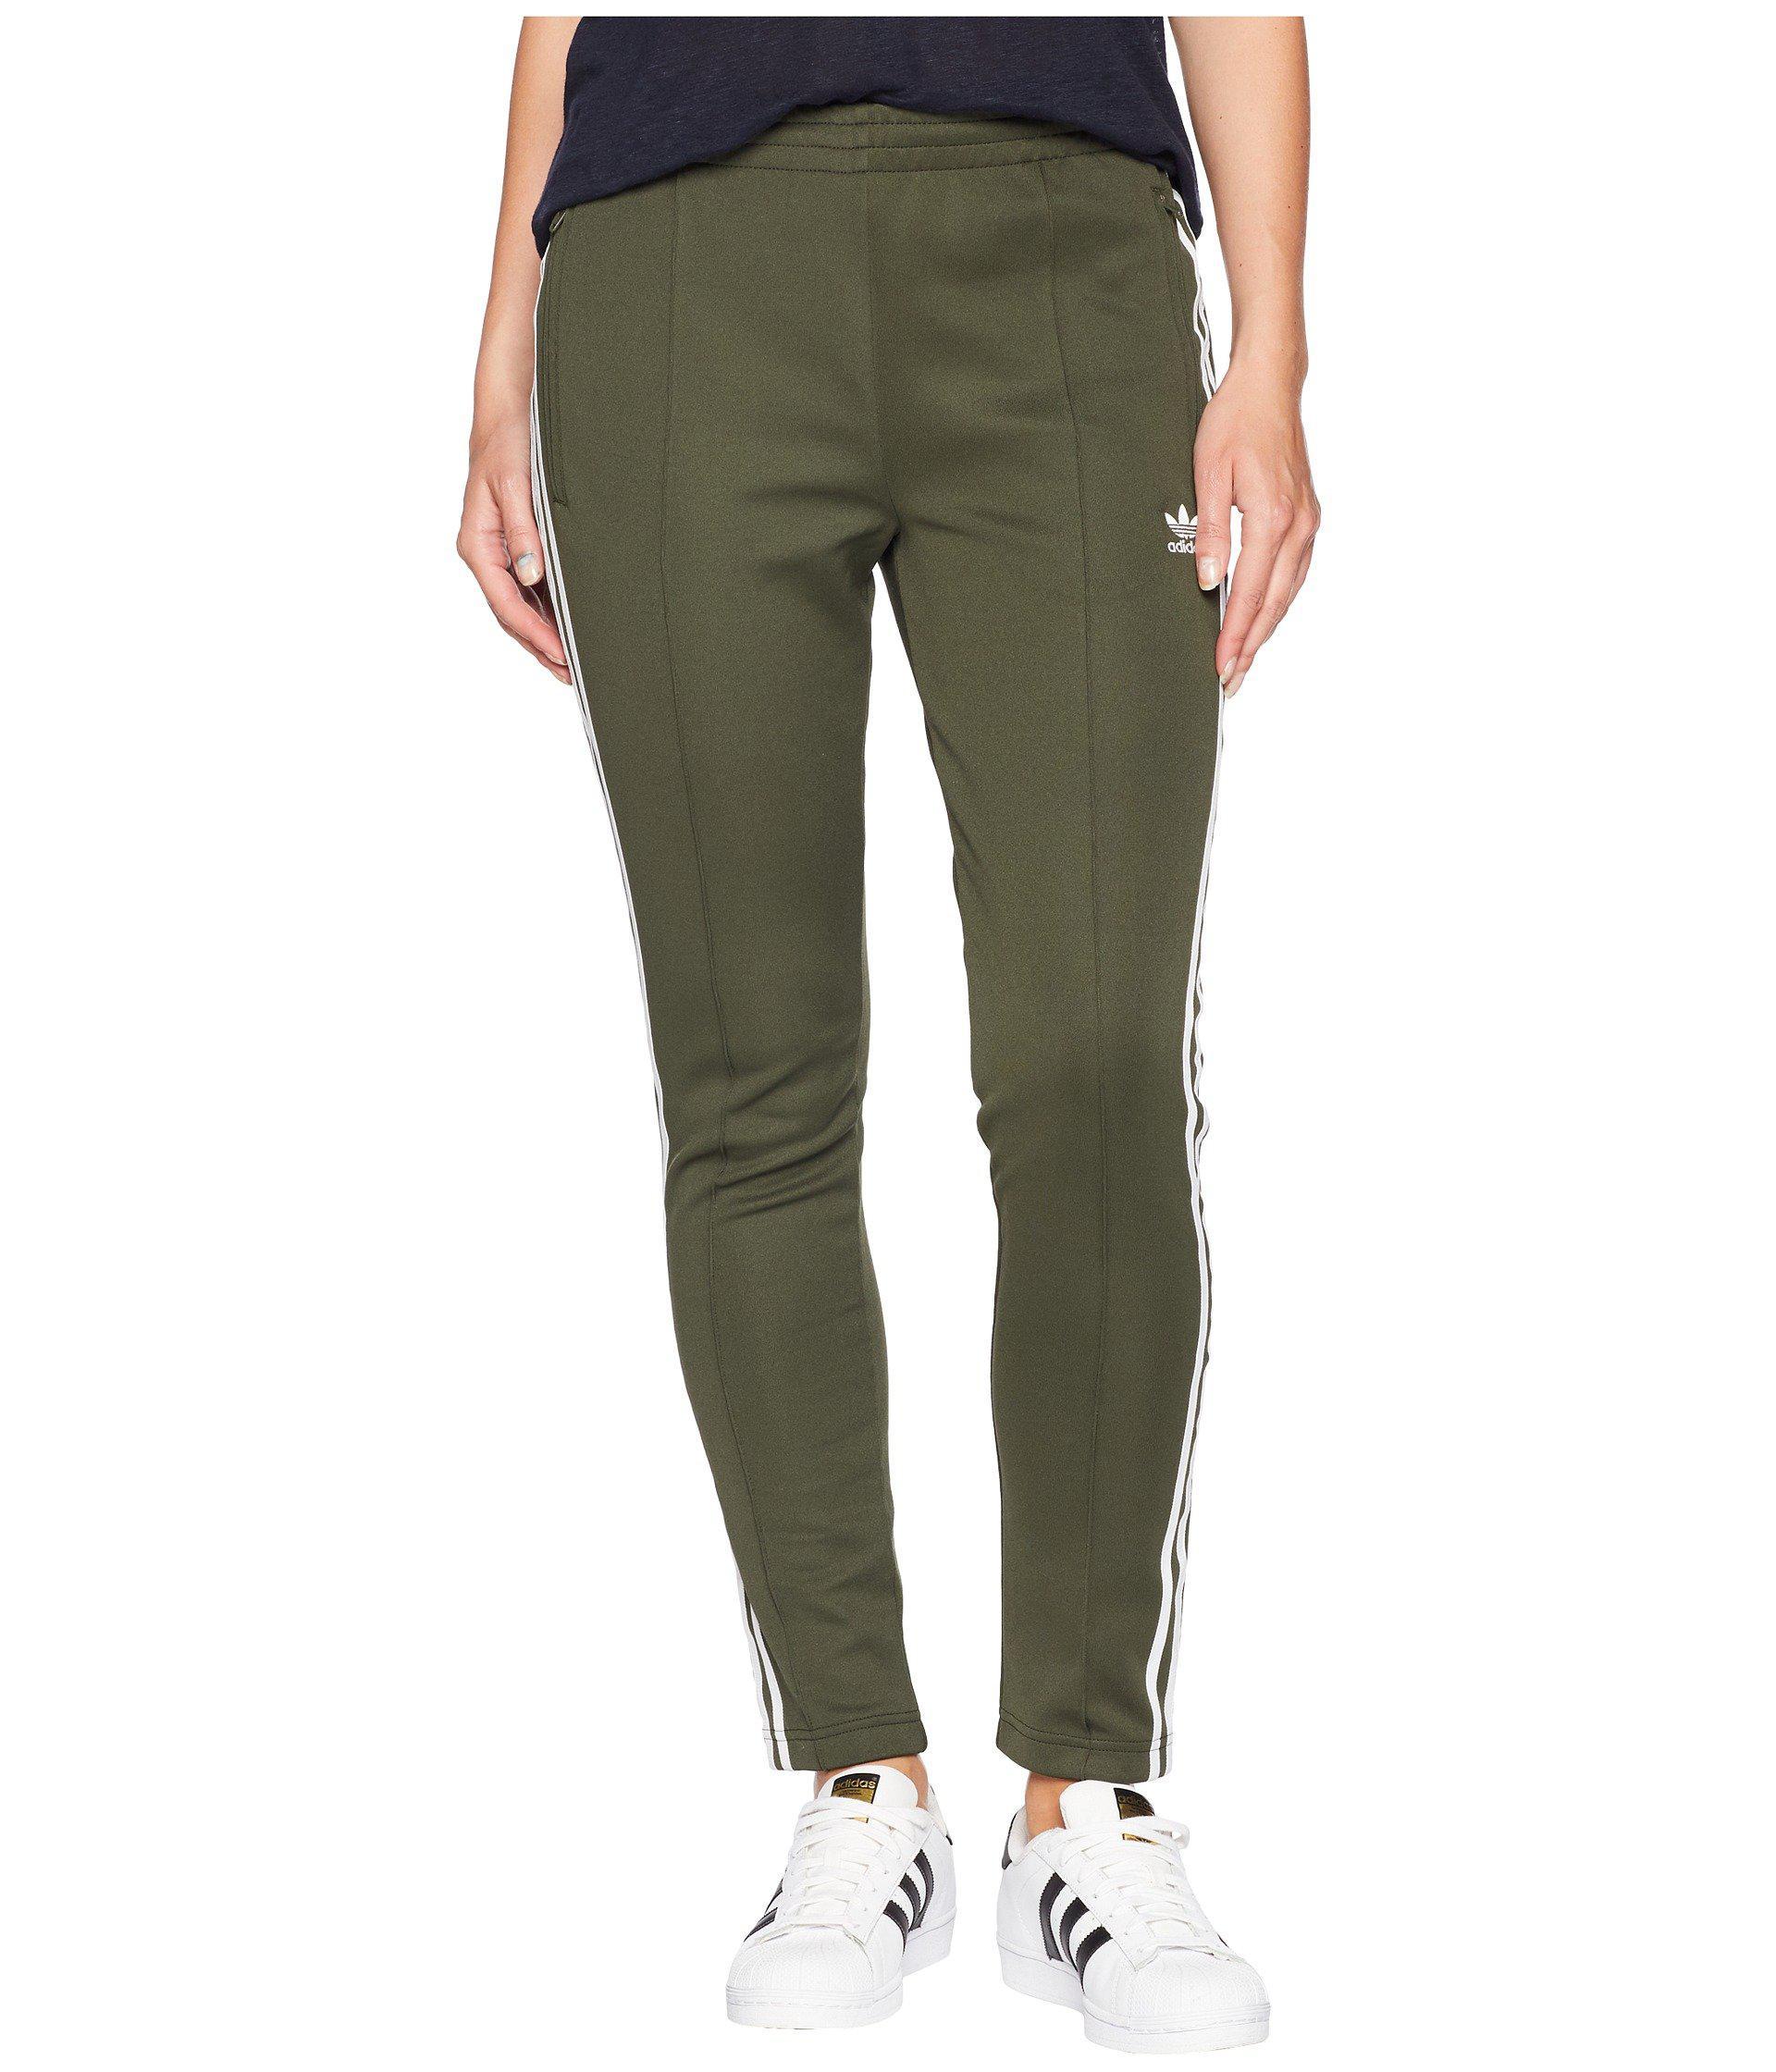 Sst Track Pants in Night Cargo Green